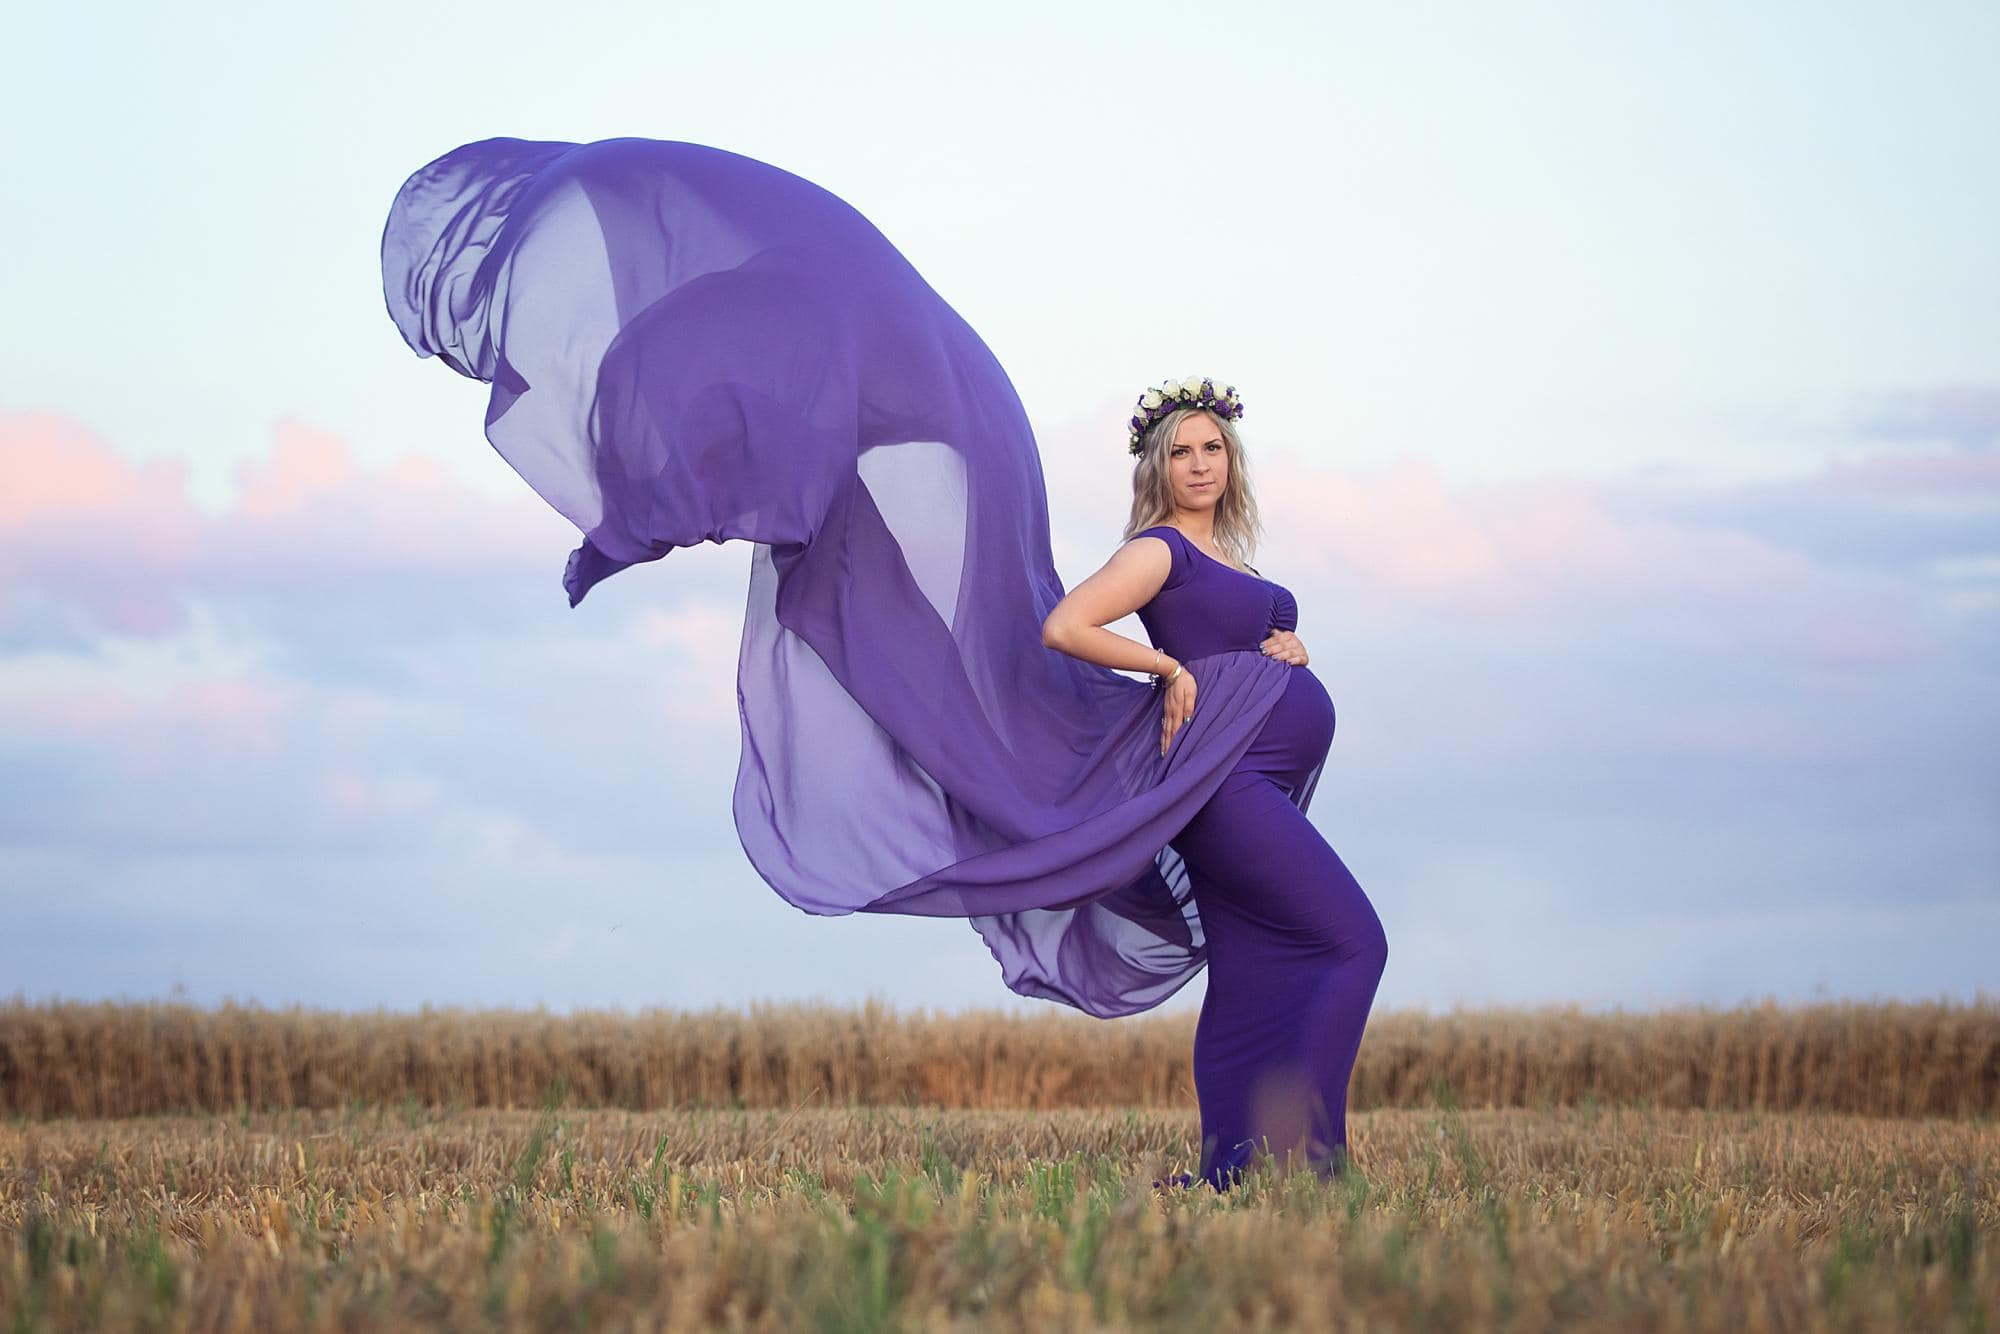 Pregnant woman posing in a purple dress for a maternity photoshoot in a field in Suffolk